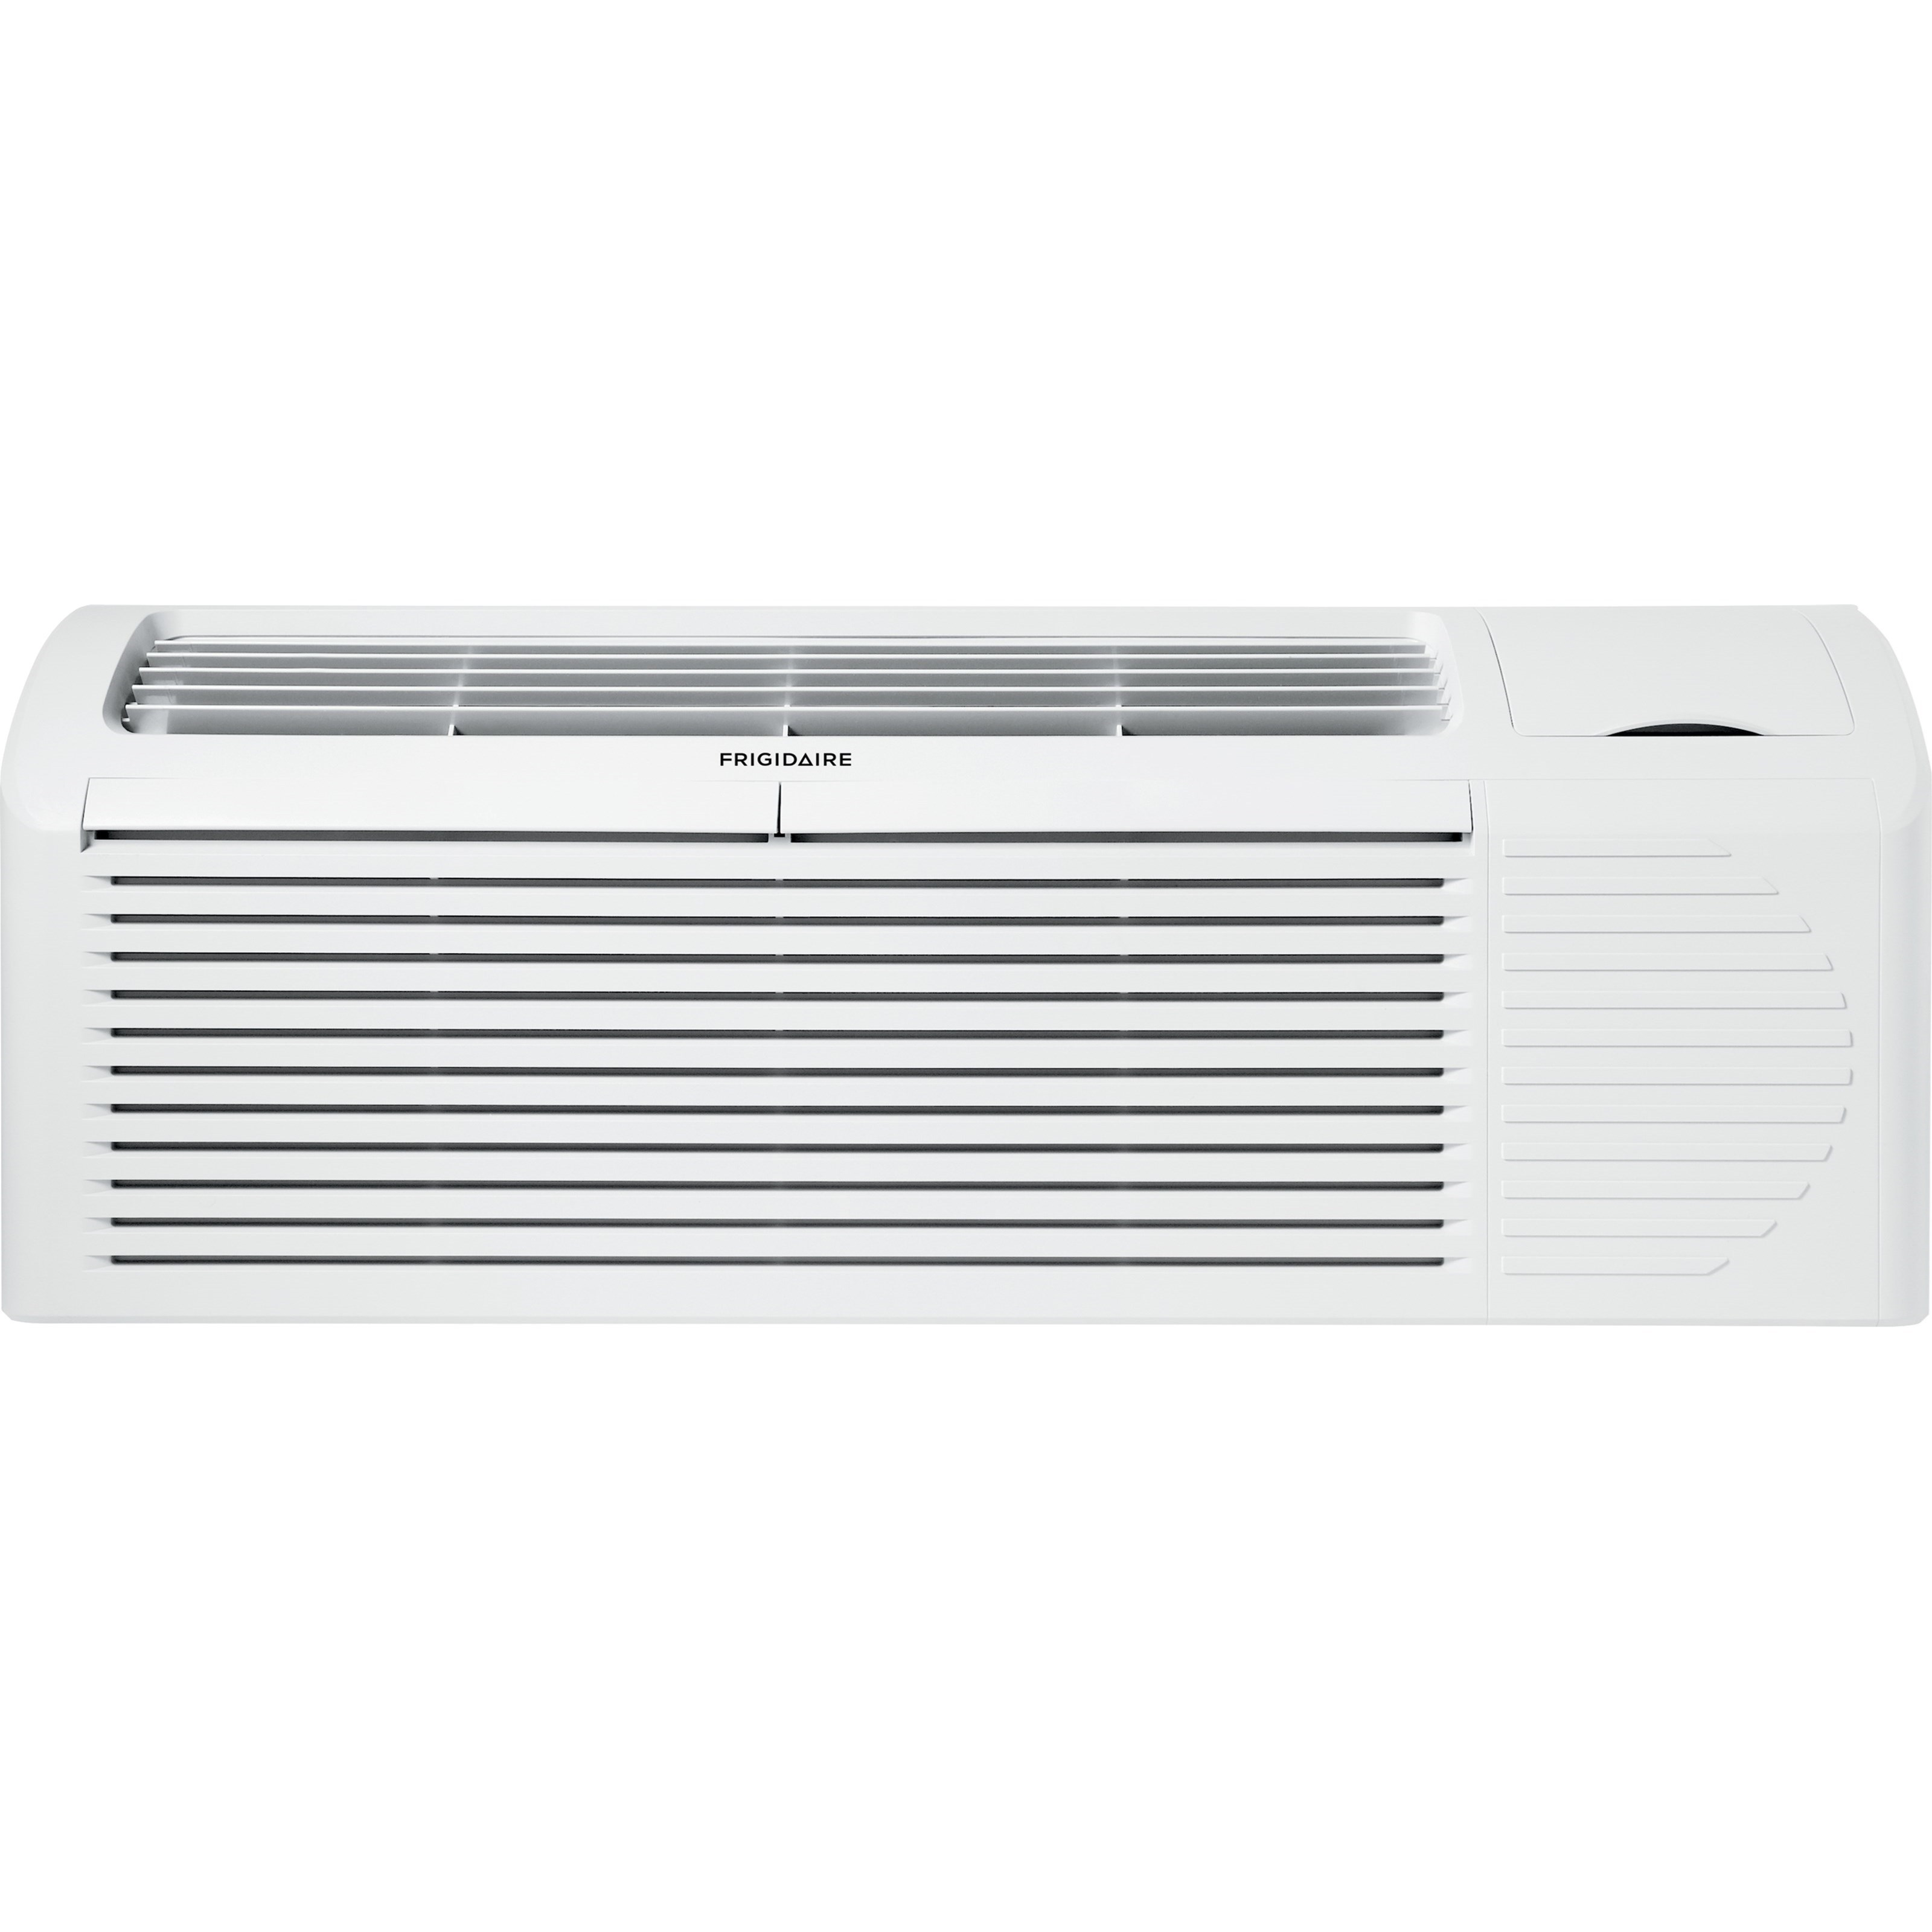 Air Conditioners PTAC unit with Electric Heat 15,000 BTU by Frigidaire at Fisher Home Furnishings